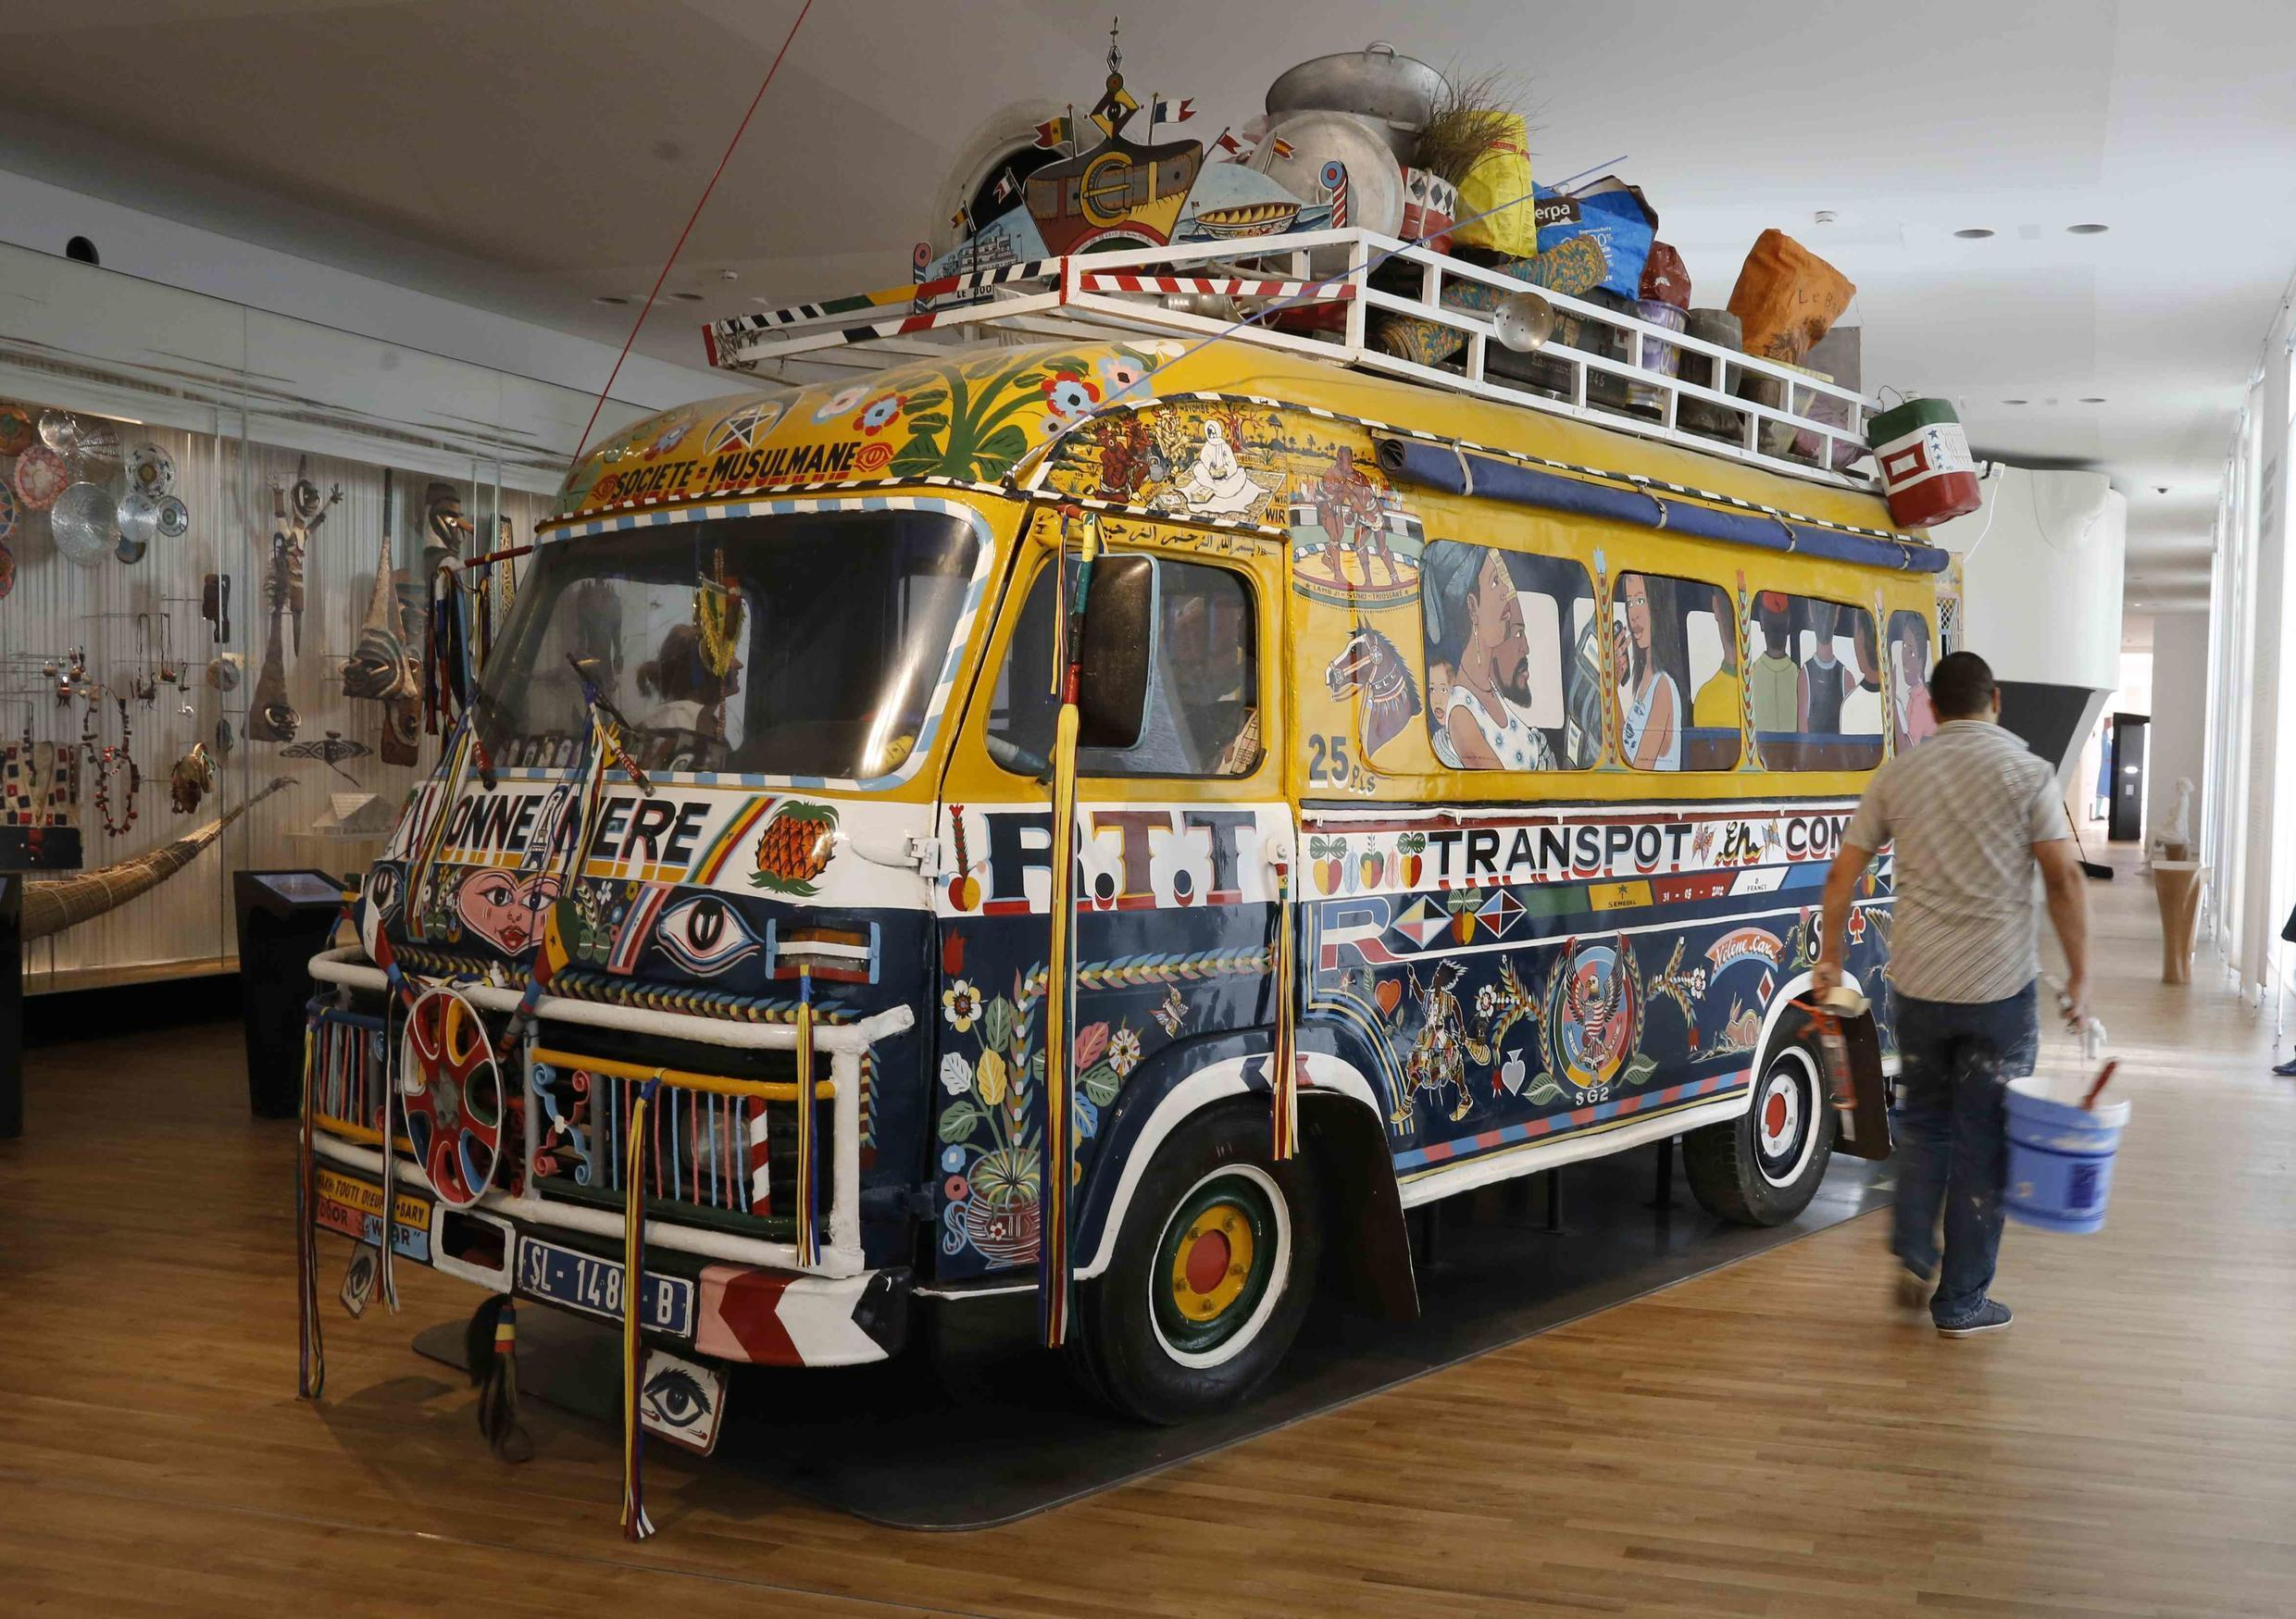 A renovated traditional public transport bus from Dakar (1960) at the Museum of Mankind in Paris, 14 October 2015.